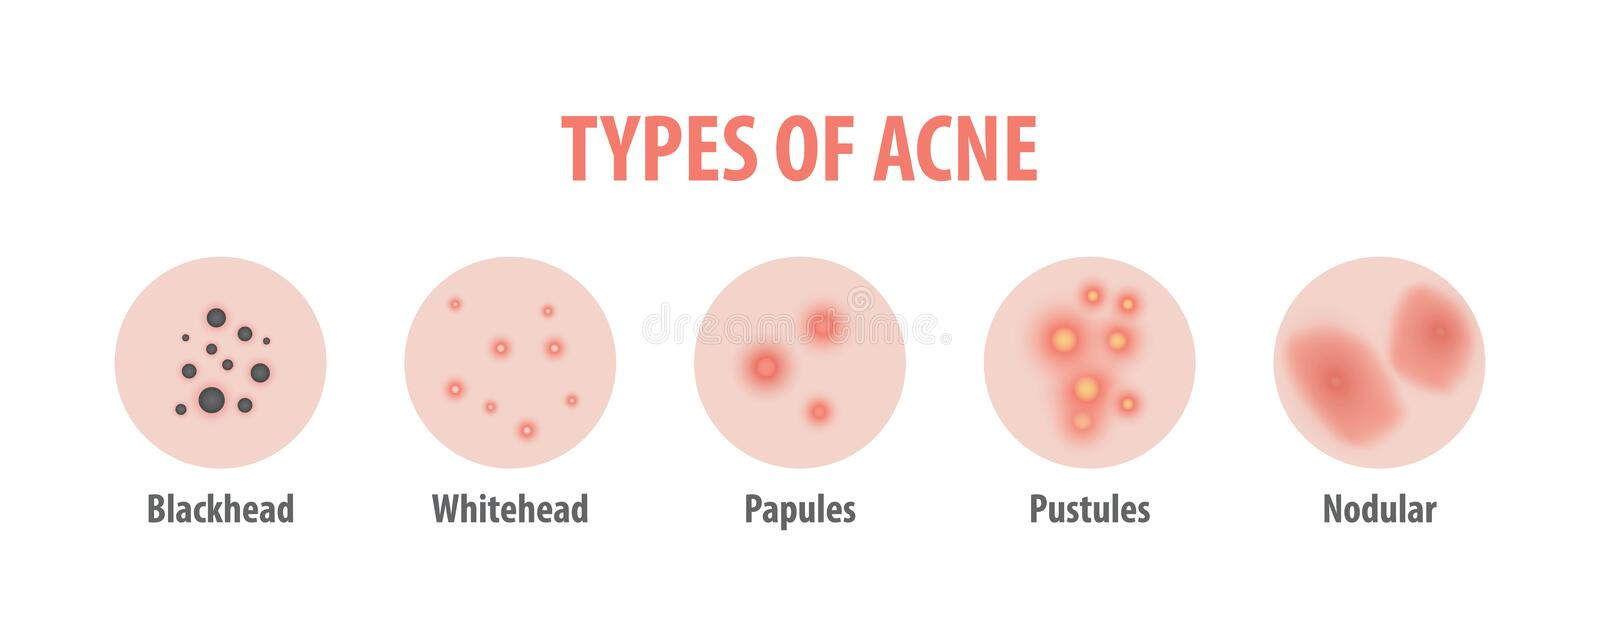 Types of acne diagram illustration vector on white background, B. Eauty concept vector illustration